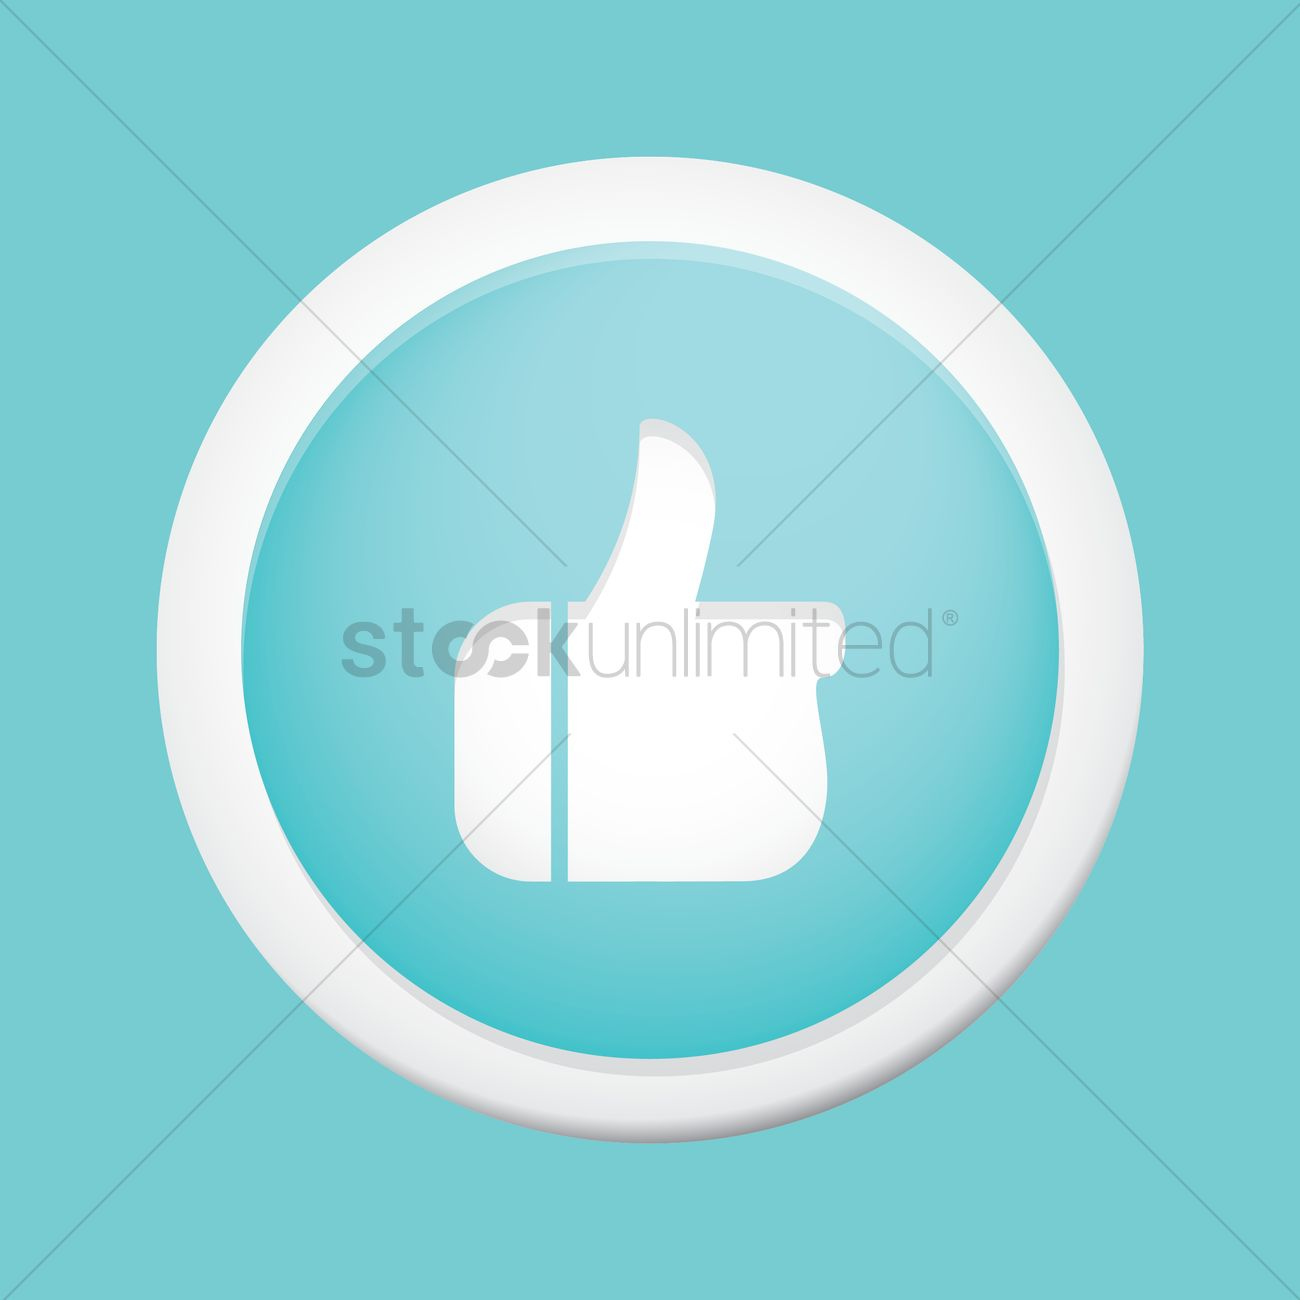 1300x1300 Thumb Up Like Button Vector Image